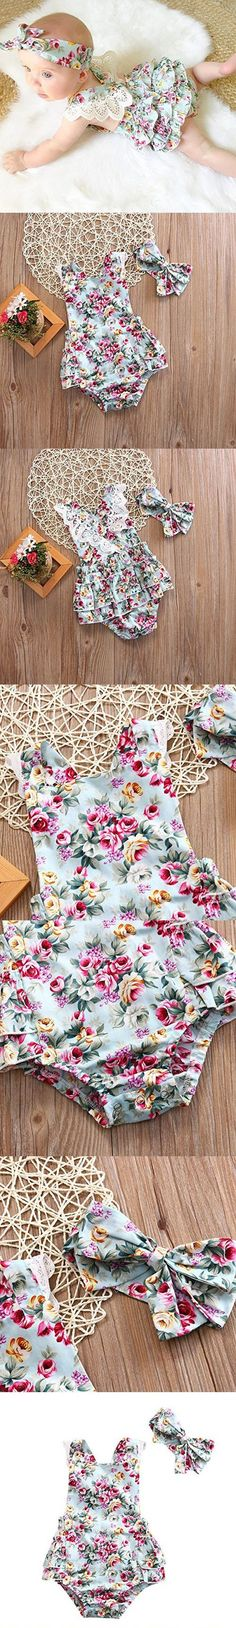 2pcs Baby Infant Girls Rompers Lace Dress Backless Floral Jumpsuit with Headband (12-18months, Floral)